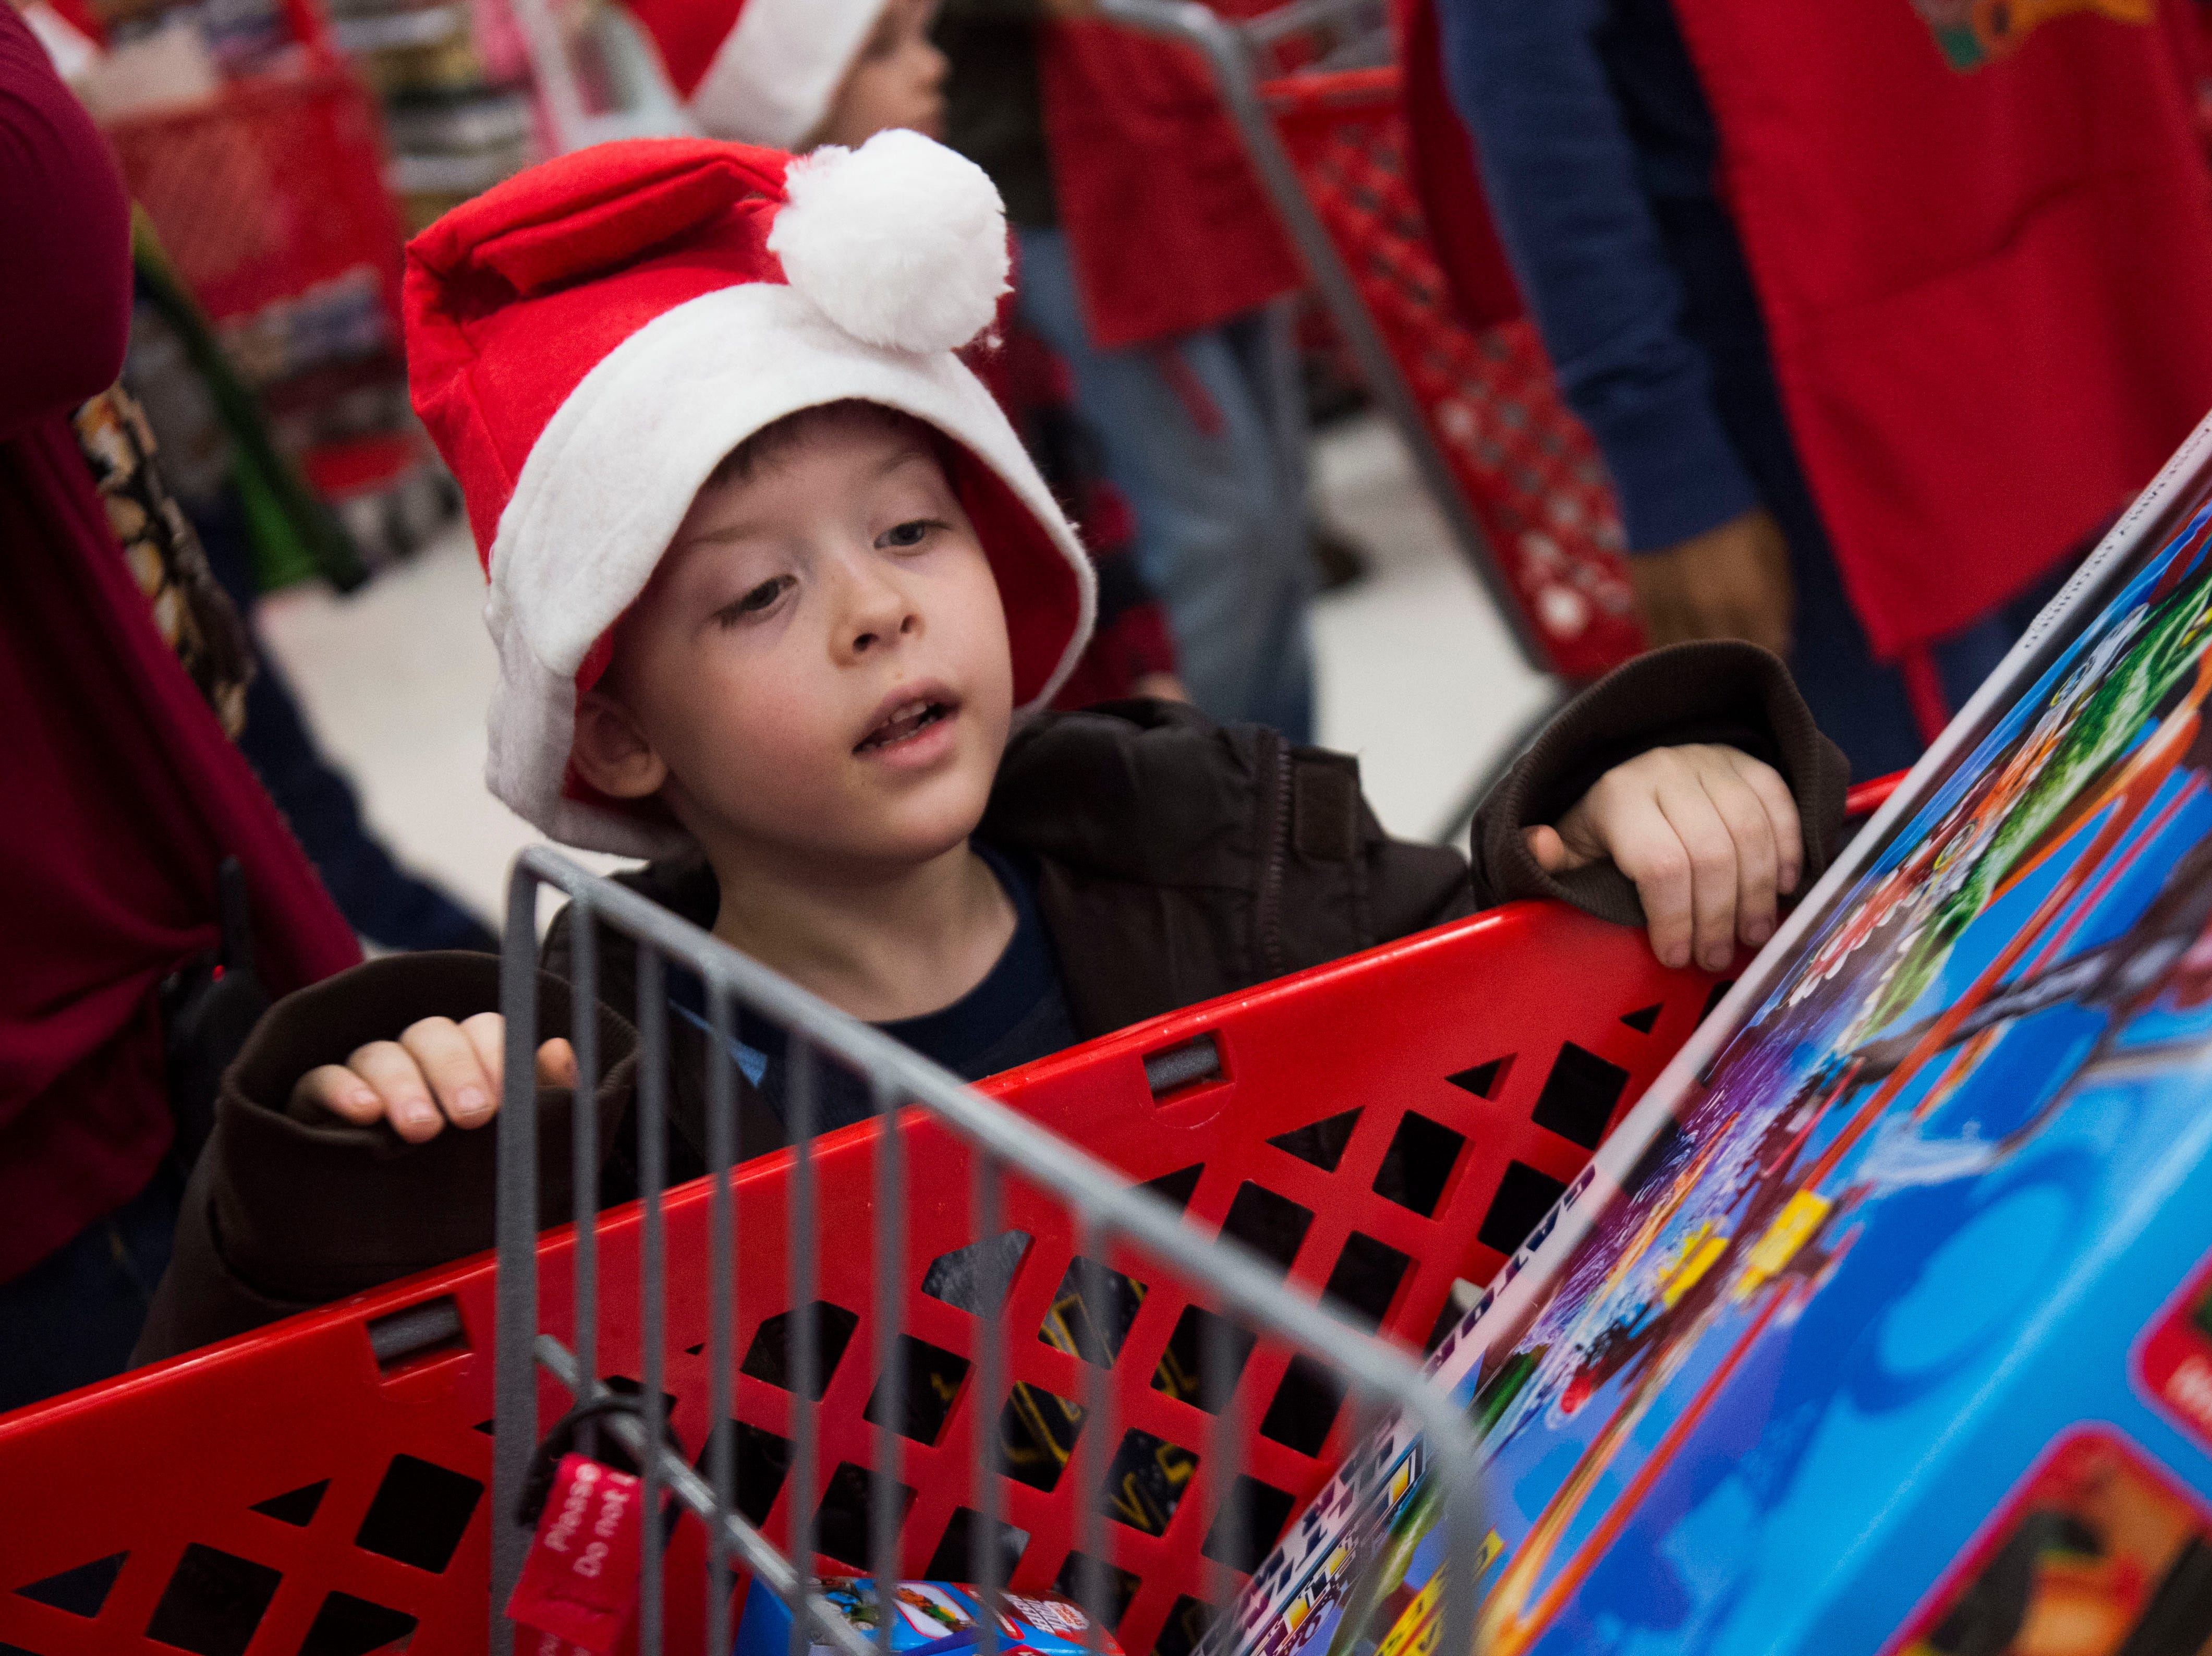 Children and their volunteers shop at the Target on Clinton Highway during the annual Weigel's Family Christmas Saturday, Dec. 1, 2018. This is the 21st year Weigel's has held the shopping spree for local underprivileged children.